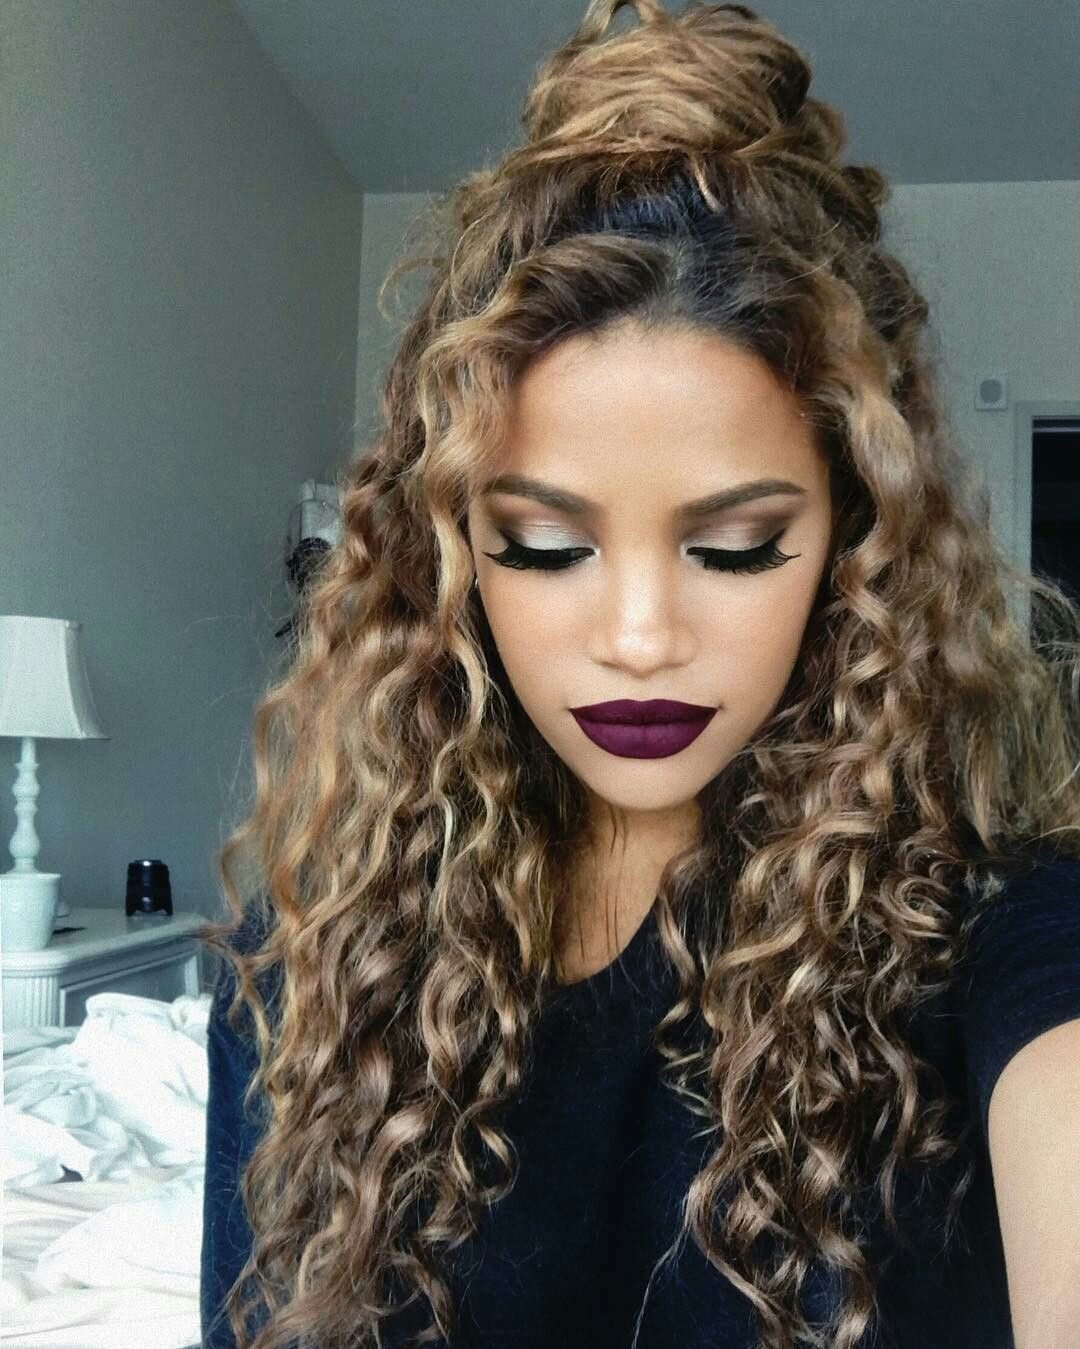 Pin by basilia on italiana pinterest makeup goals makeup and curly